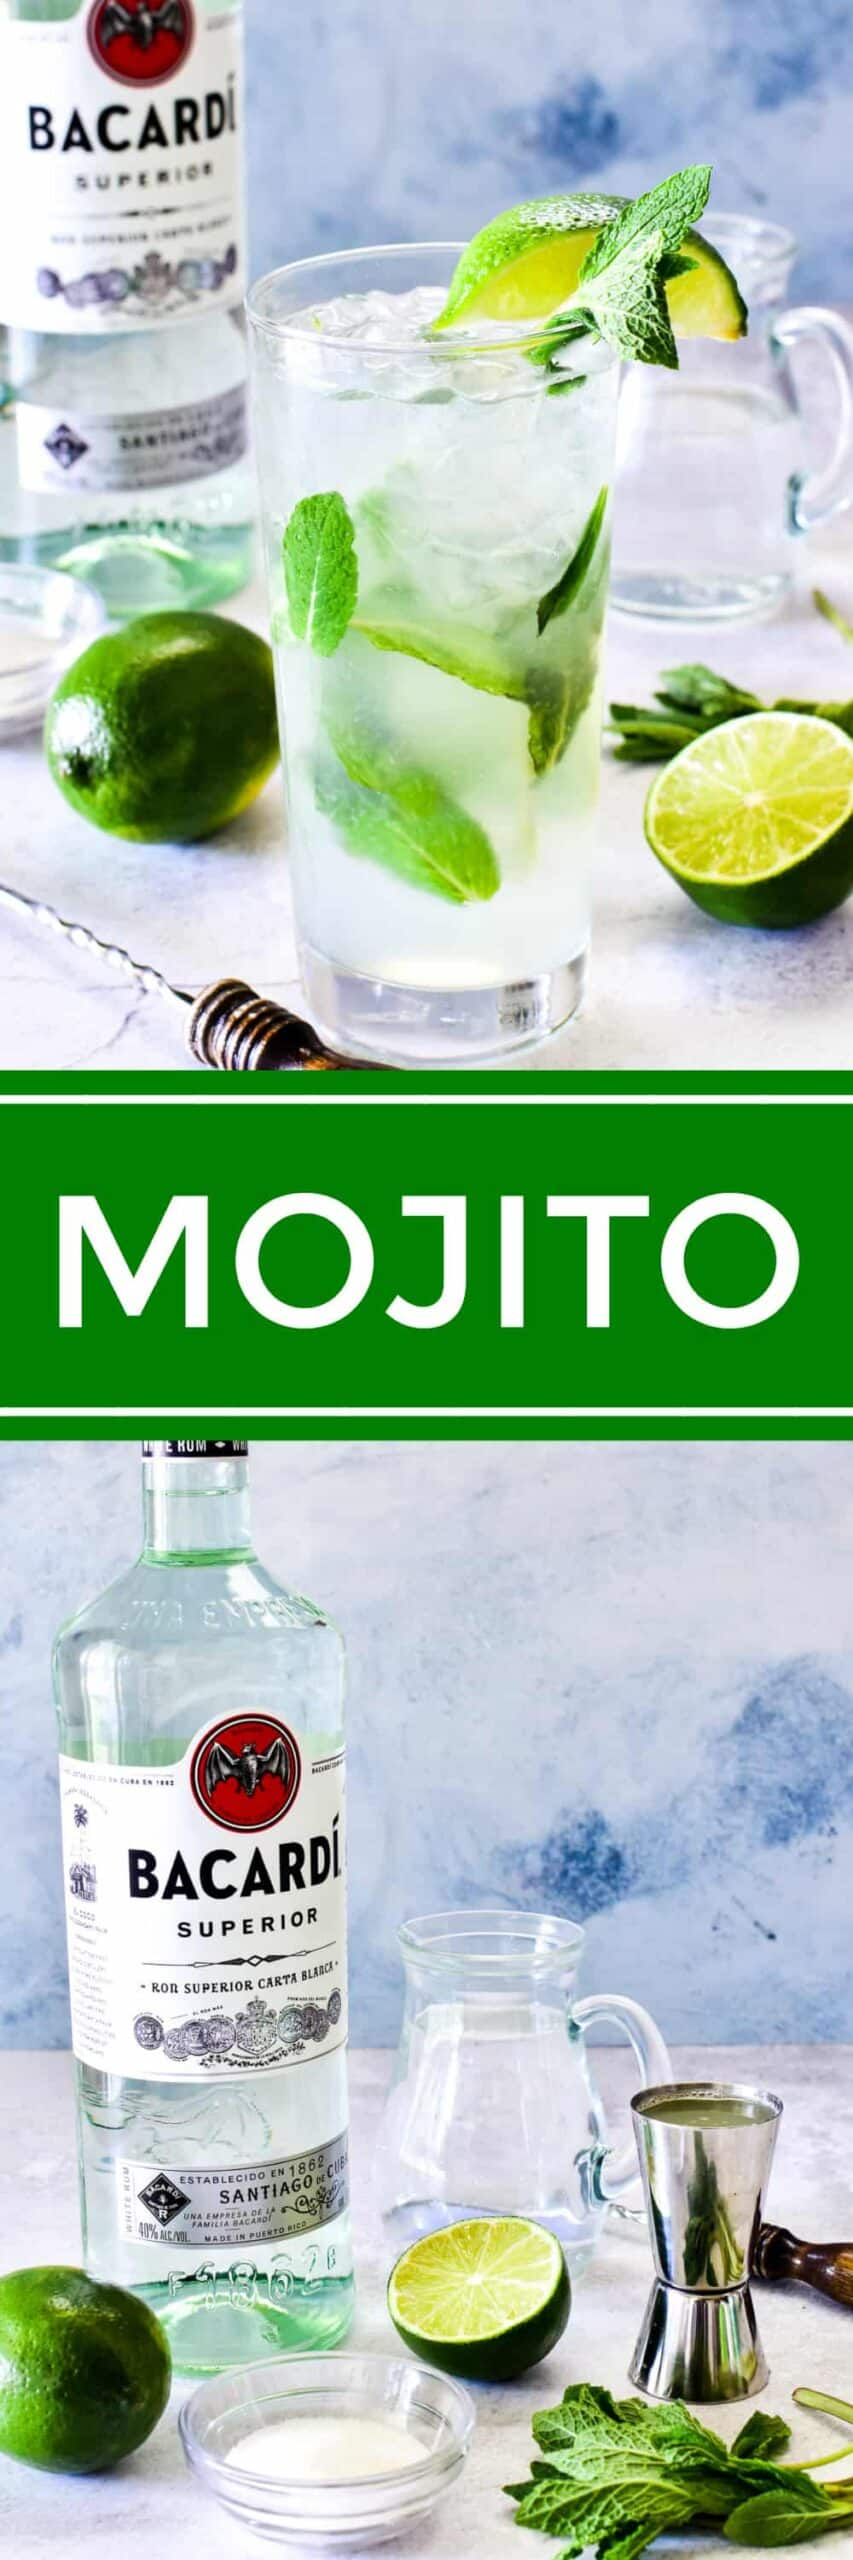 Collage image of Mojito ingredients and assembled drink